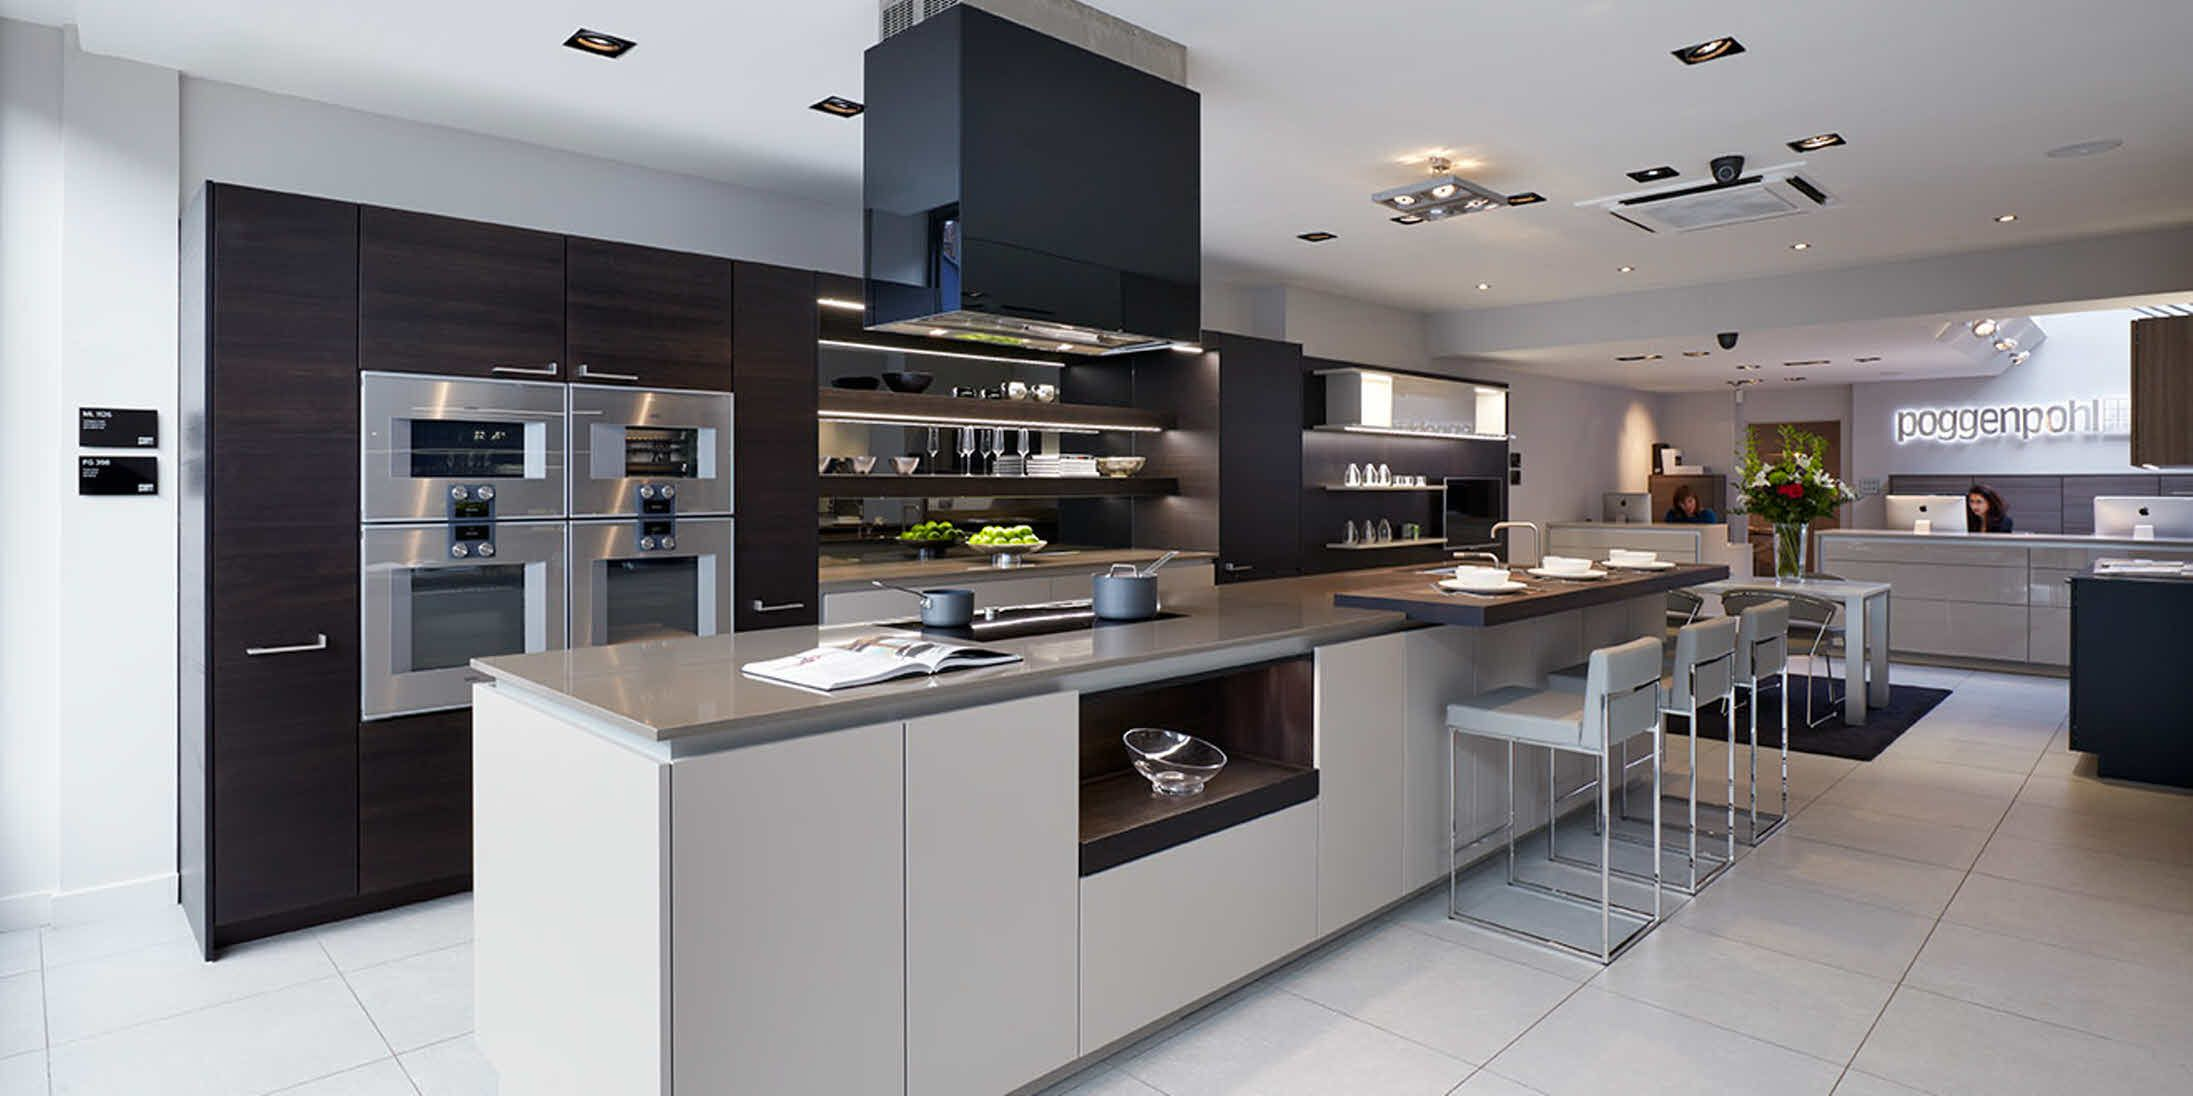 Large Kitchen With Poggenpohl  Google Search